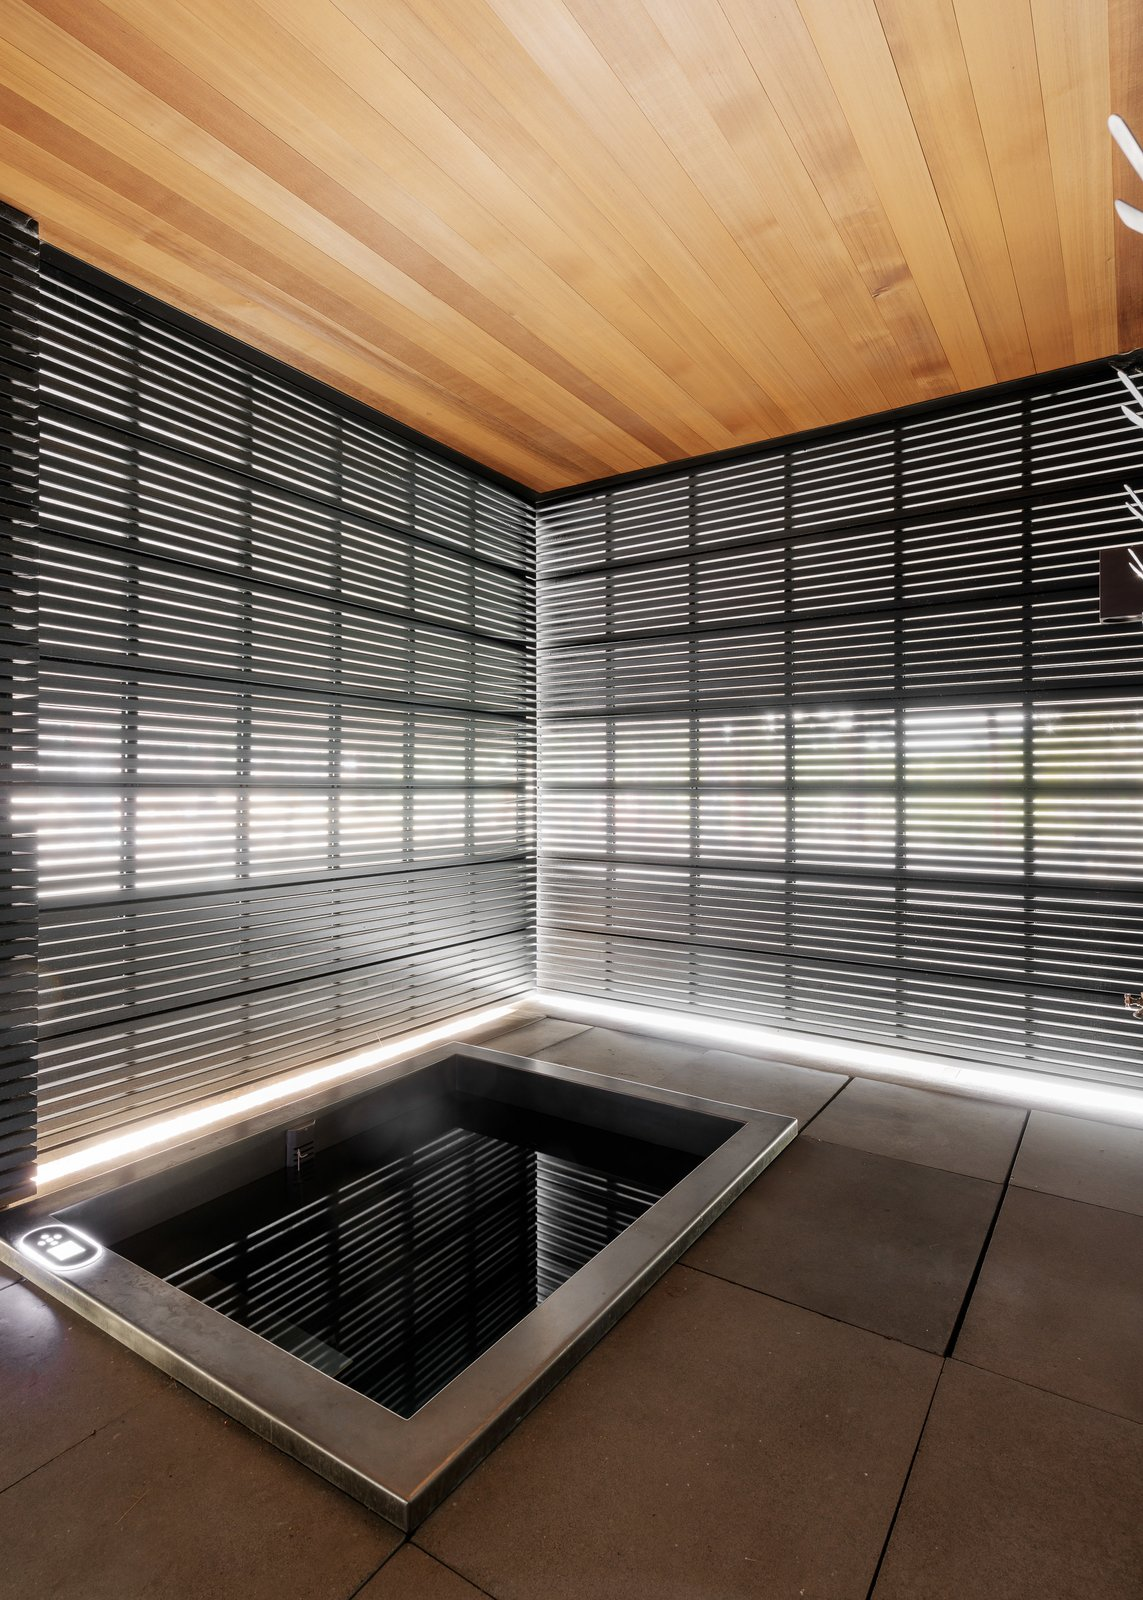 Outdoor Spa - Enclosure